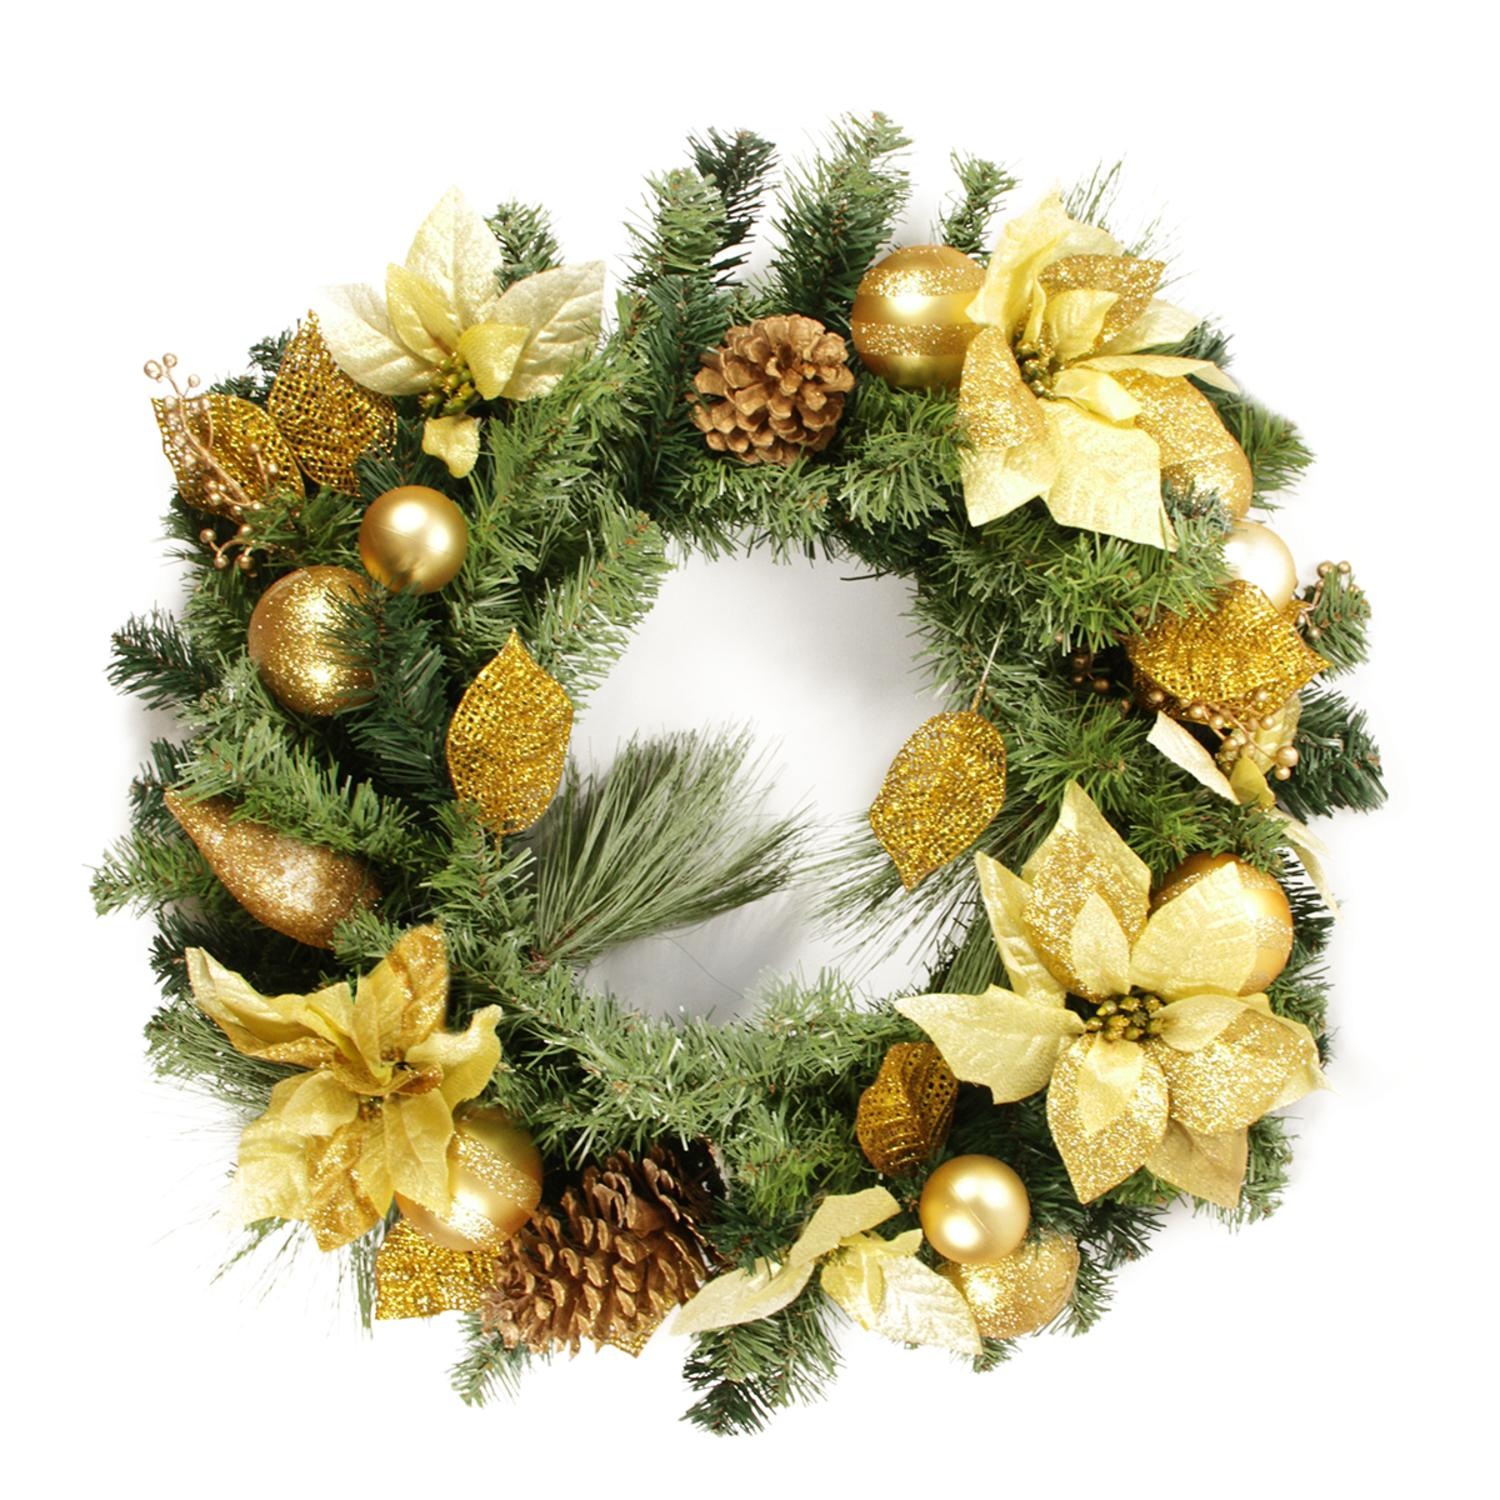 """24"""" Pre-Decorated Pine, Gold Poinsettia and Ornament Adorned Artificial Christmas Wreath - Unlit"""